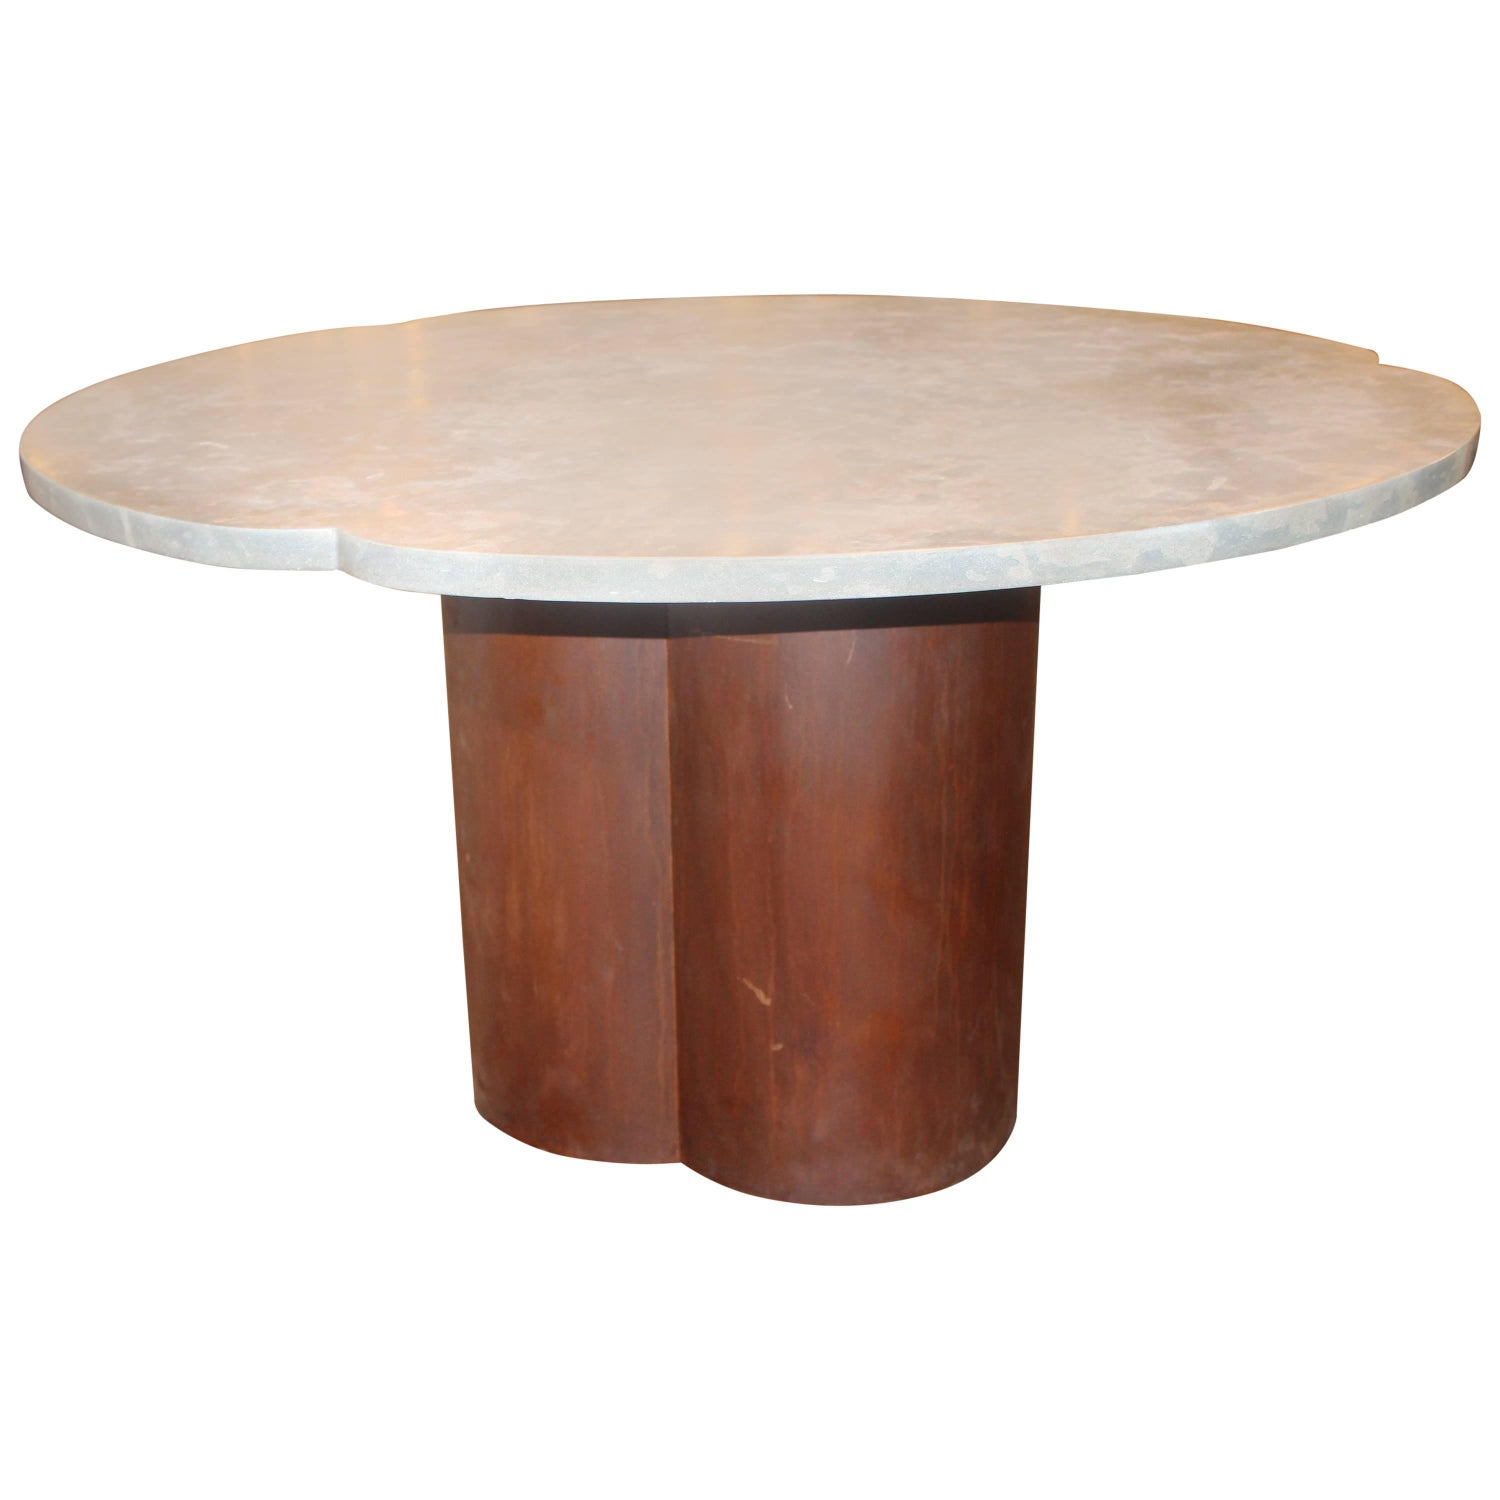 Clover Shaped Italian Dining Table Base with Honed Lagos Azul